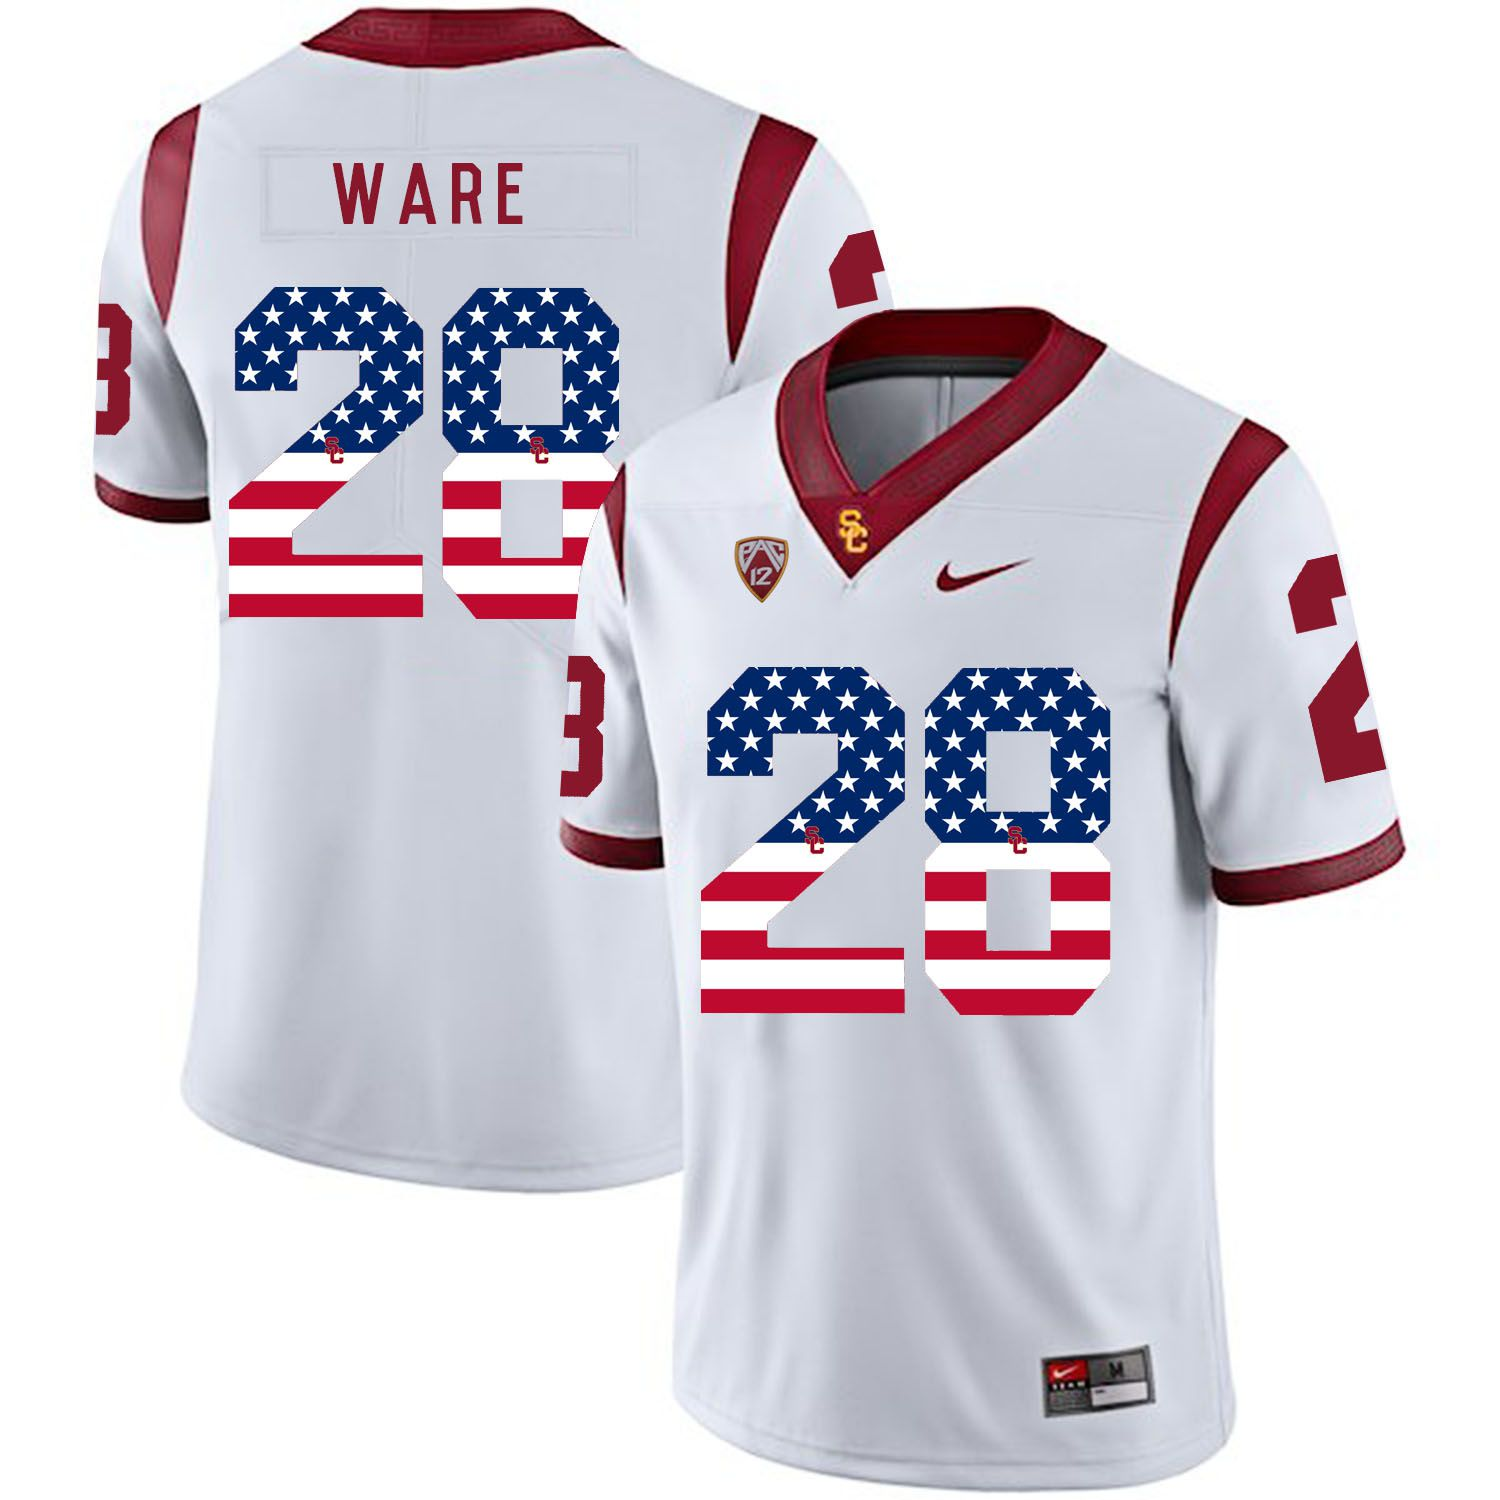 Men USC Trojans 28 Ware White Flag Customized NCAA Jerseys